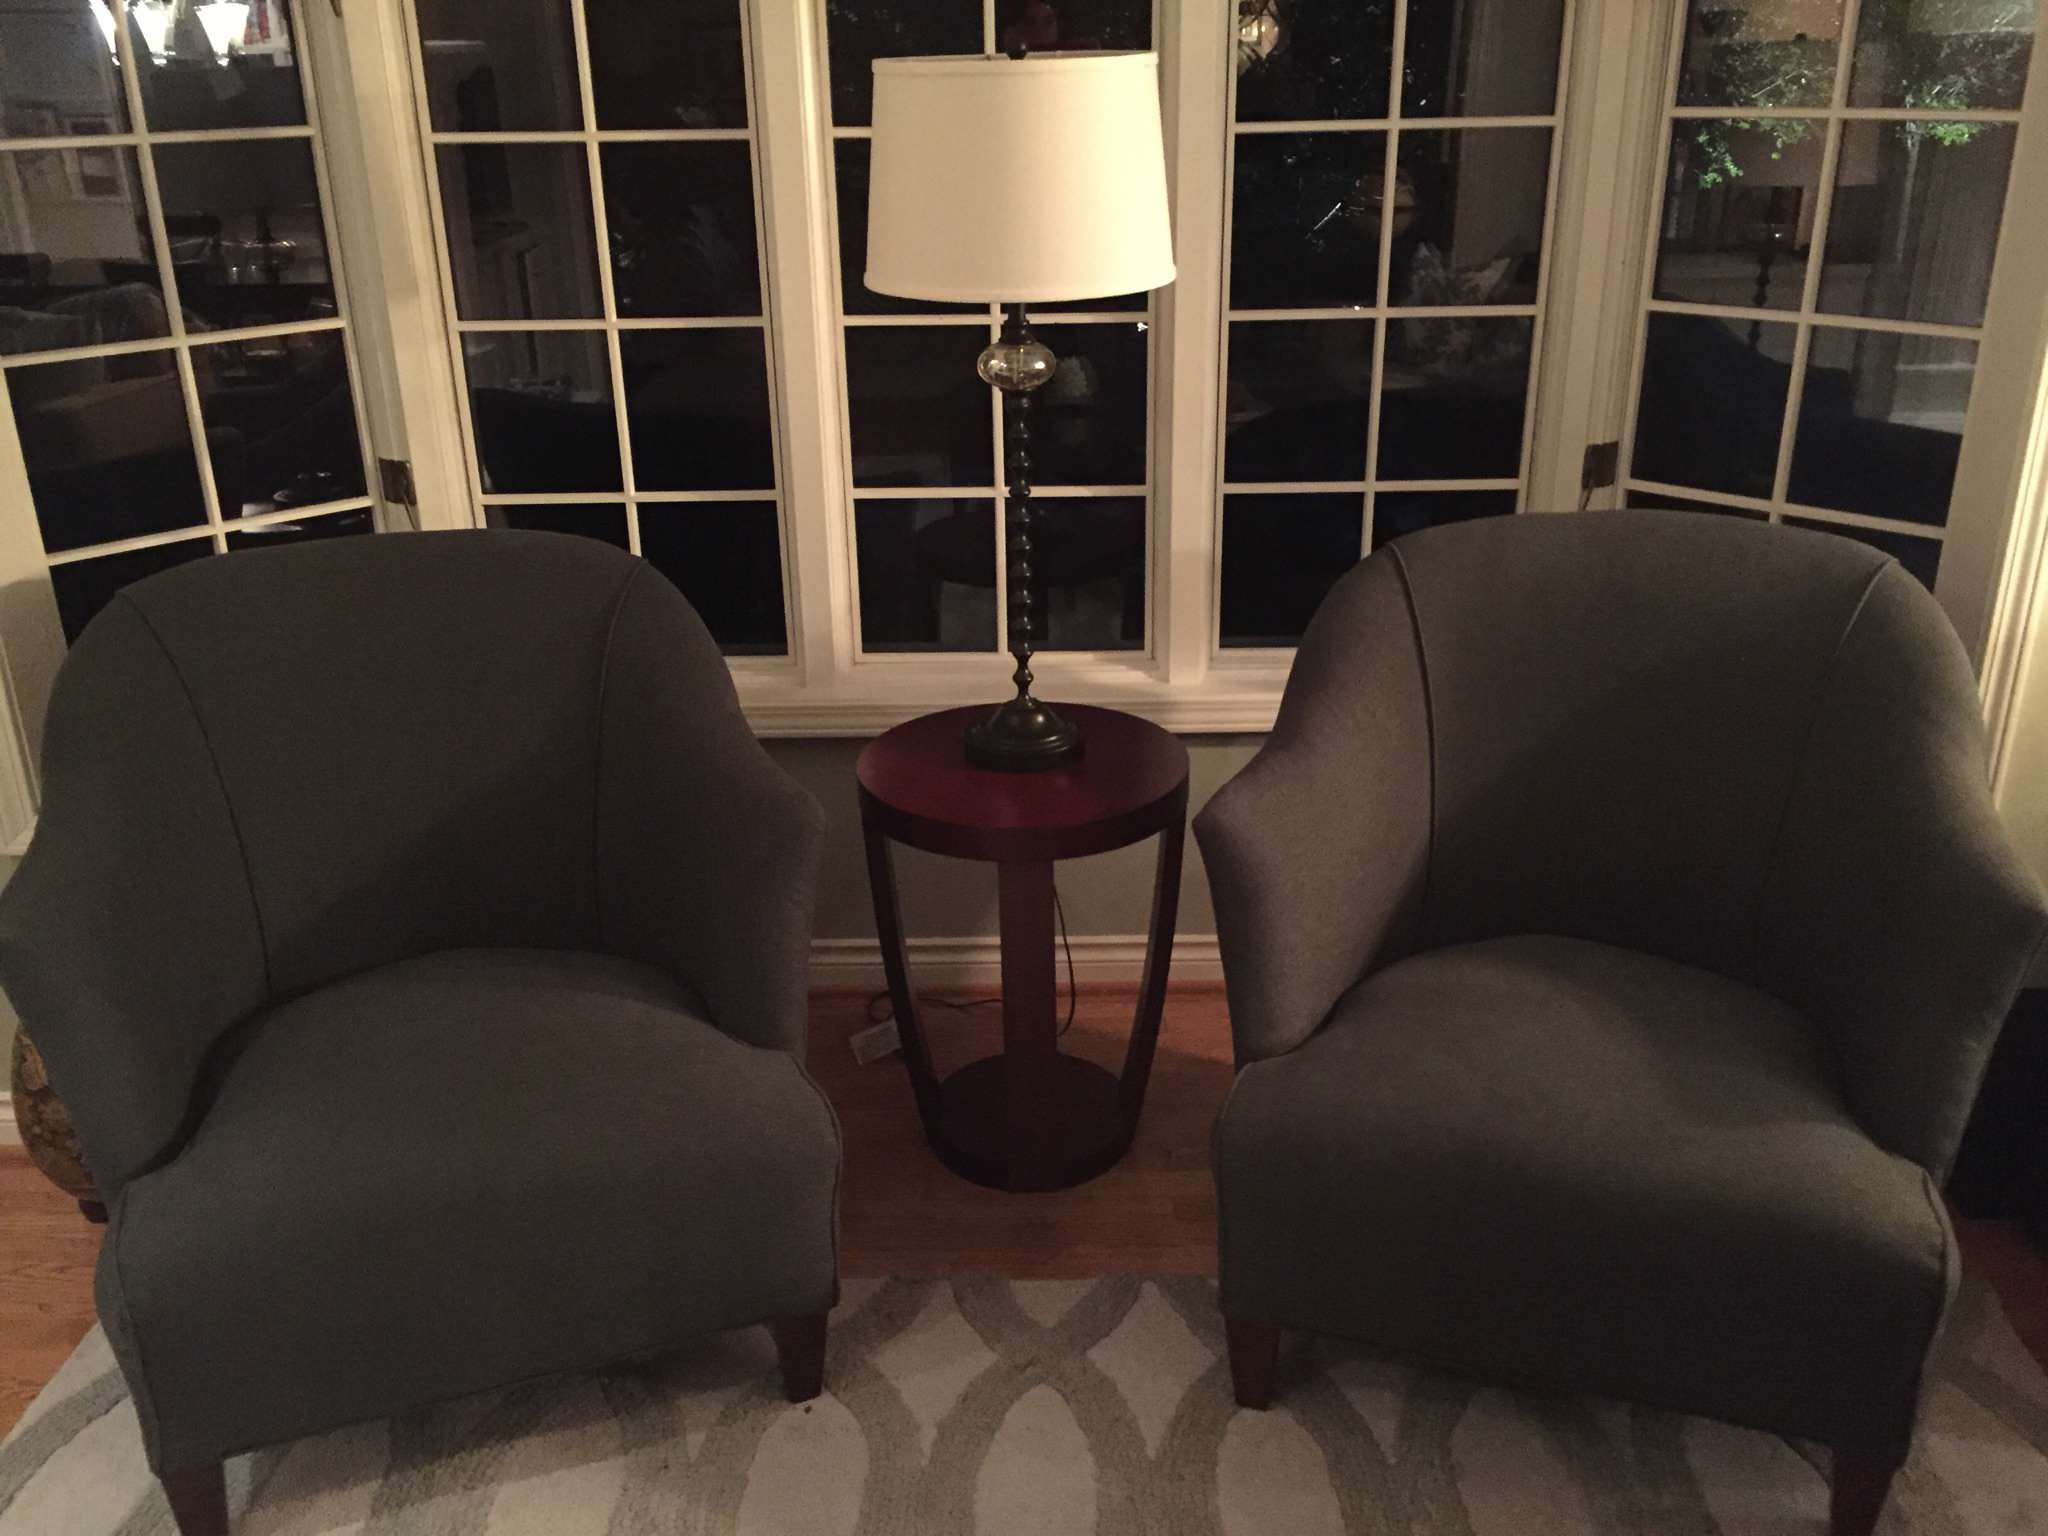 Michelle's chairs